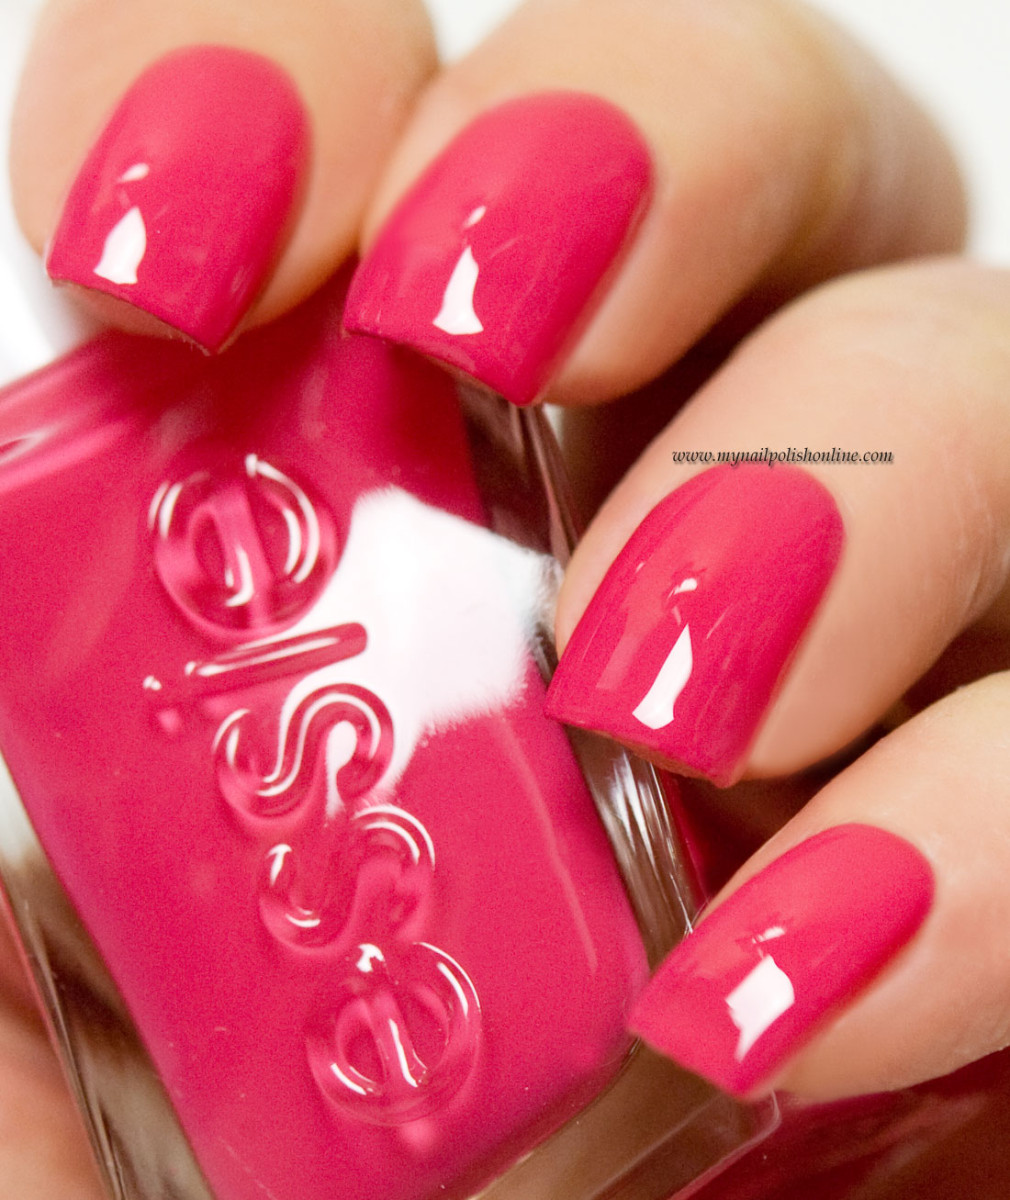 Essie - The It-factor